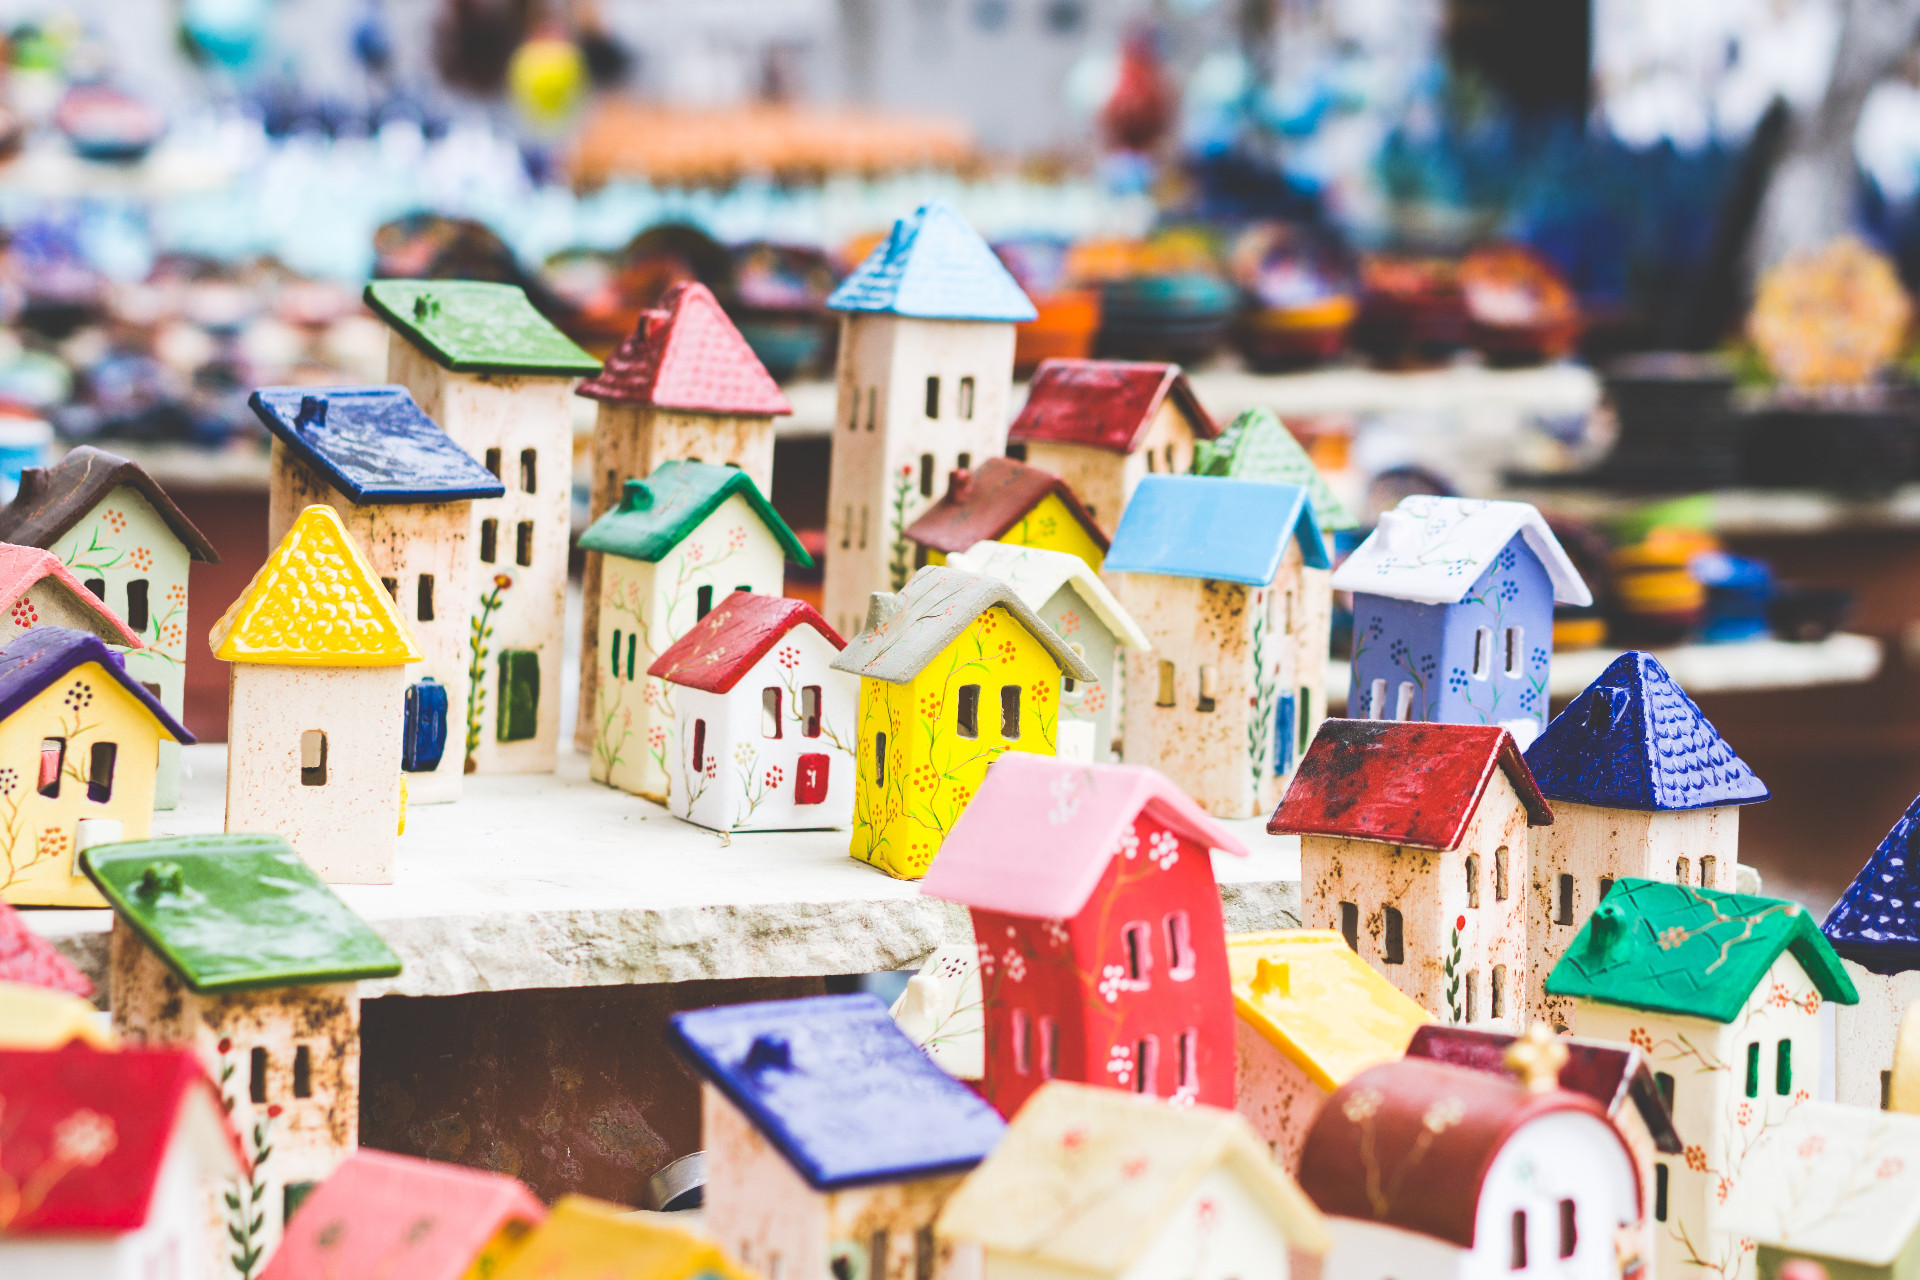 Small colorful porcelain houses on a display table